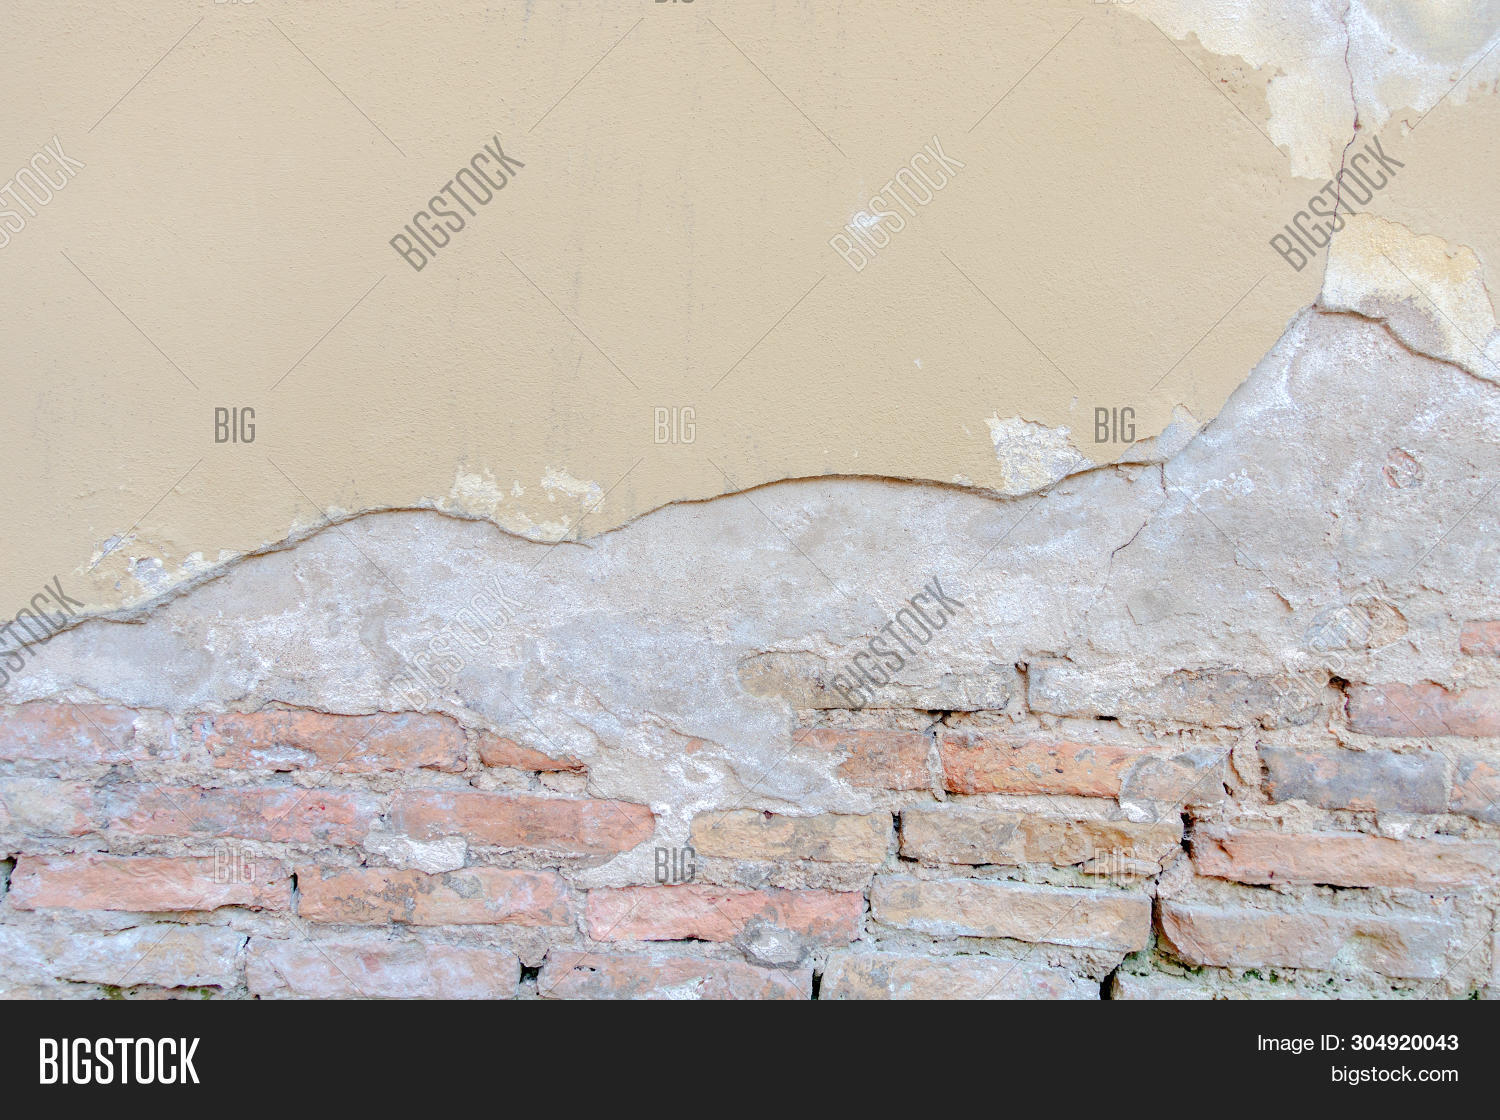 Old Grungy Red Brick Wall With Peeled Beige Stucco Background. Vintage Retro Plaster Wall With Dirty